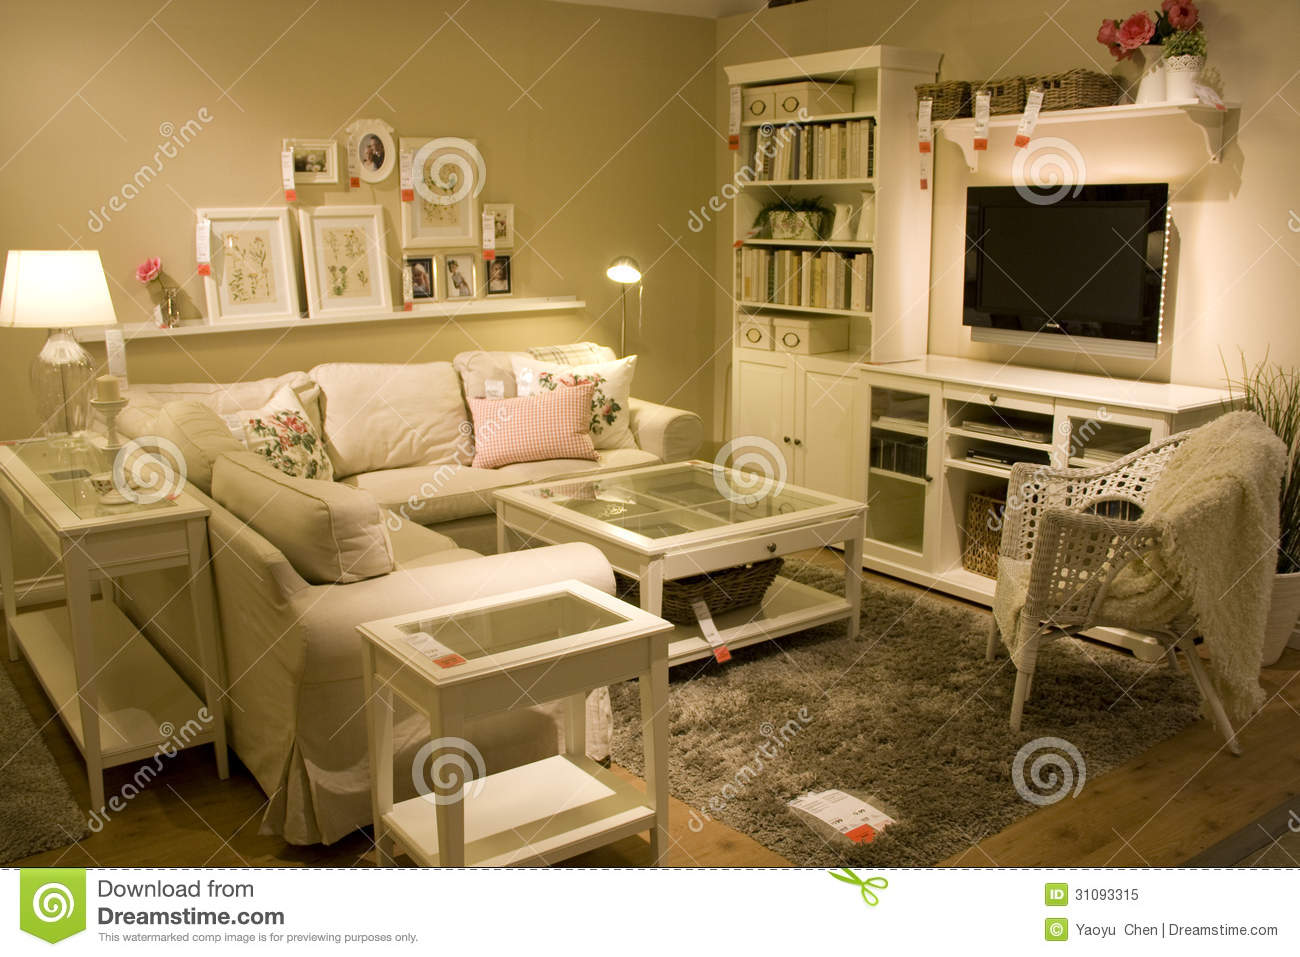 Living room furniture store editorial image image 31093315 for Living room furniture stores